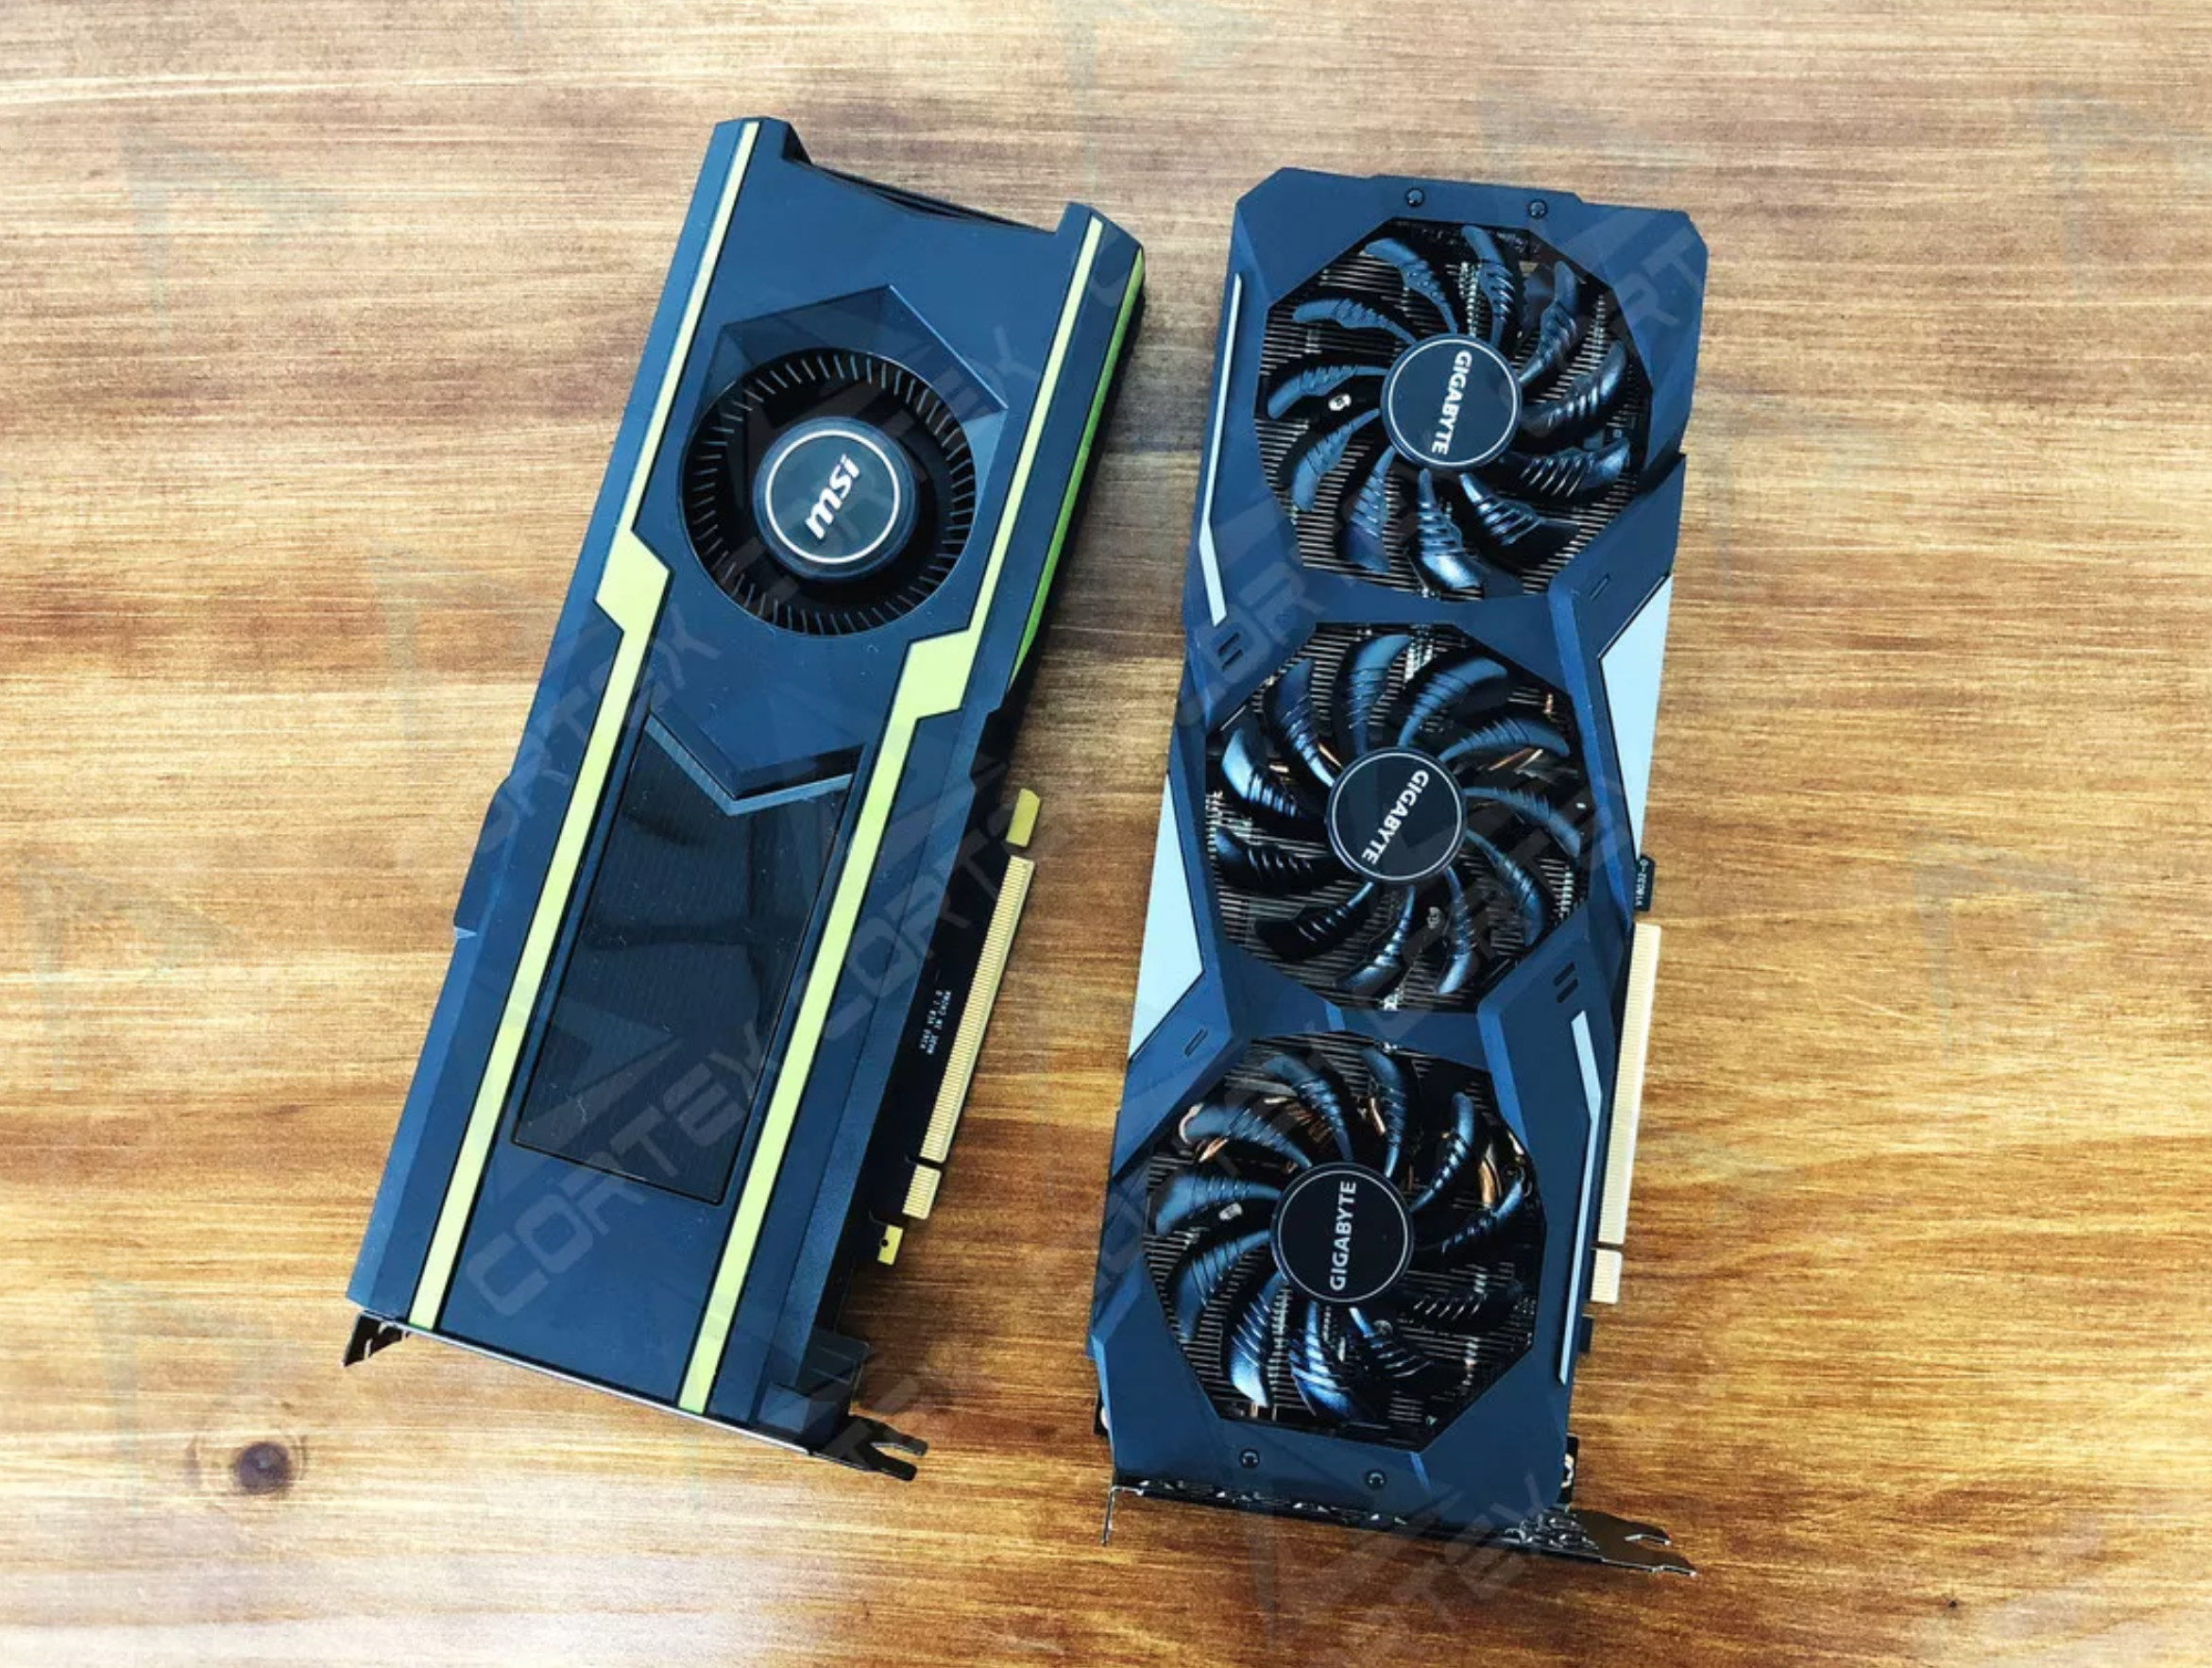 NVIDIA GeForce RTX 2080 Ti Mining Review: To 50 MH/s and beyond